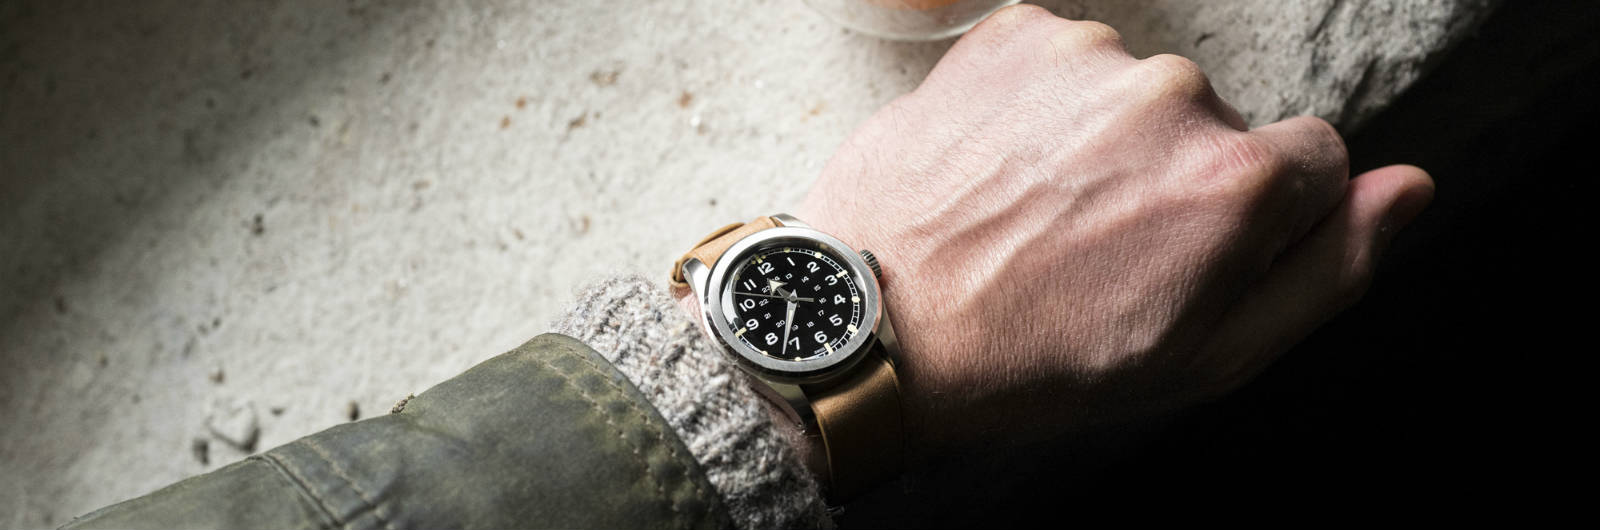 Handsome Watches Inspired by the British Army